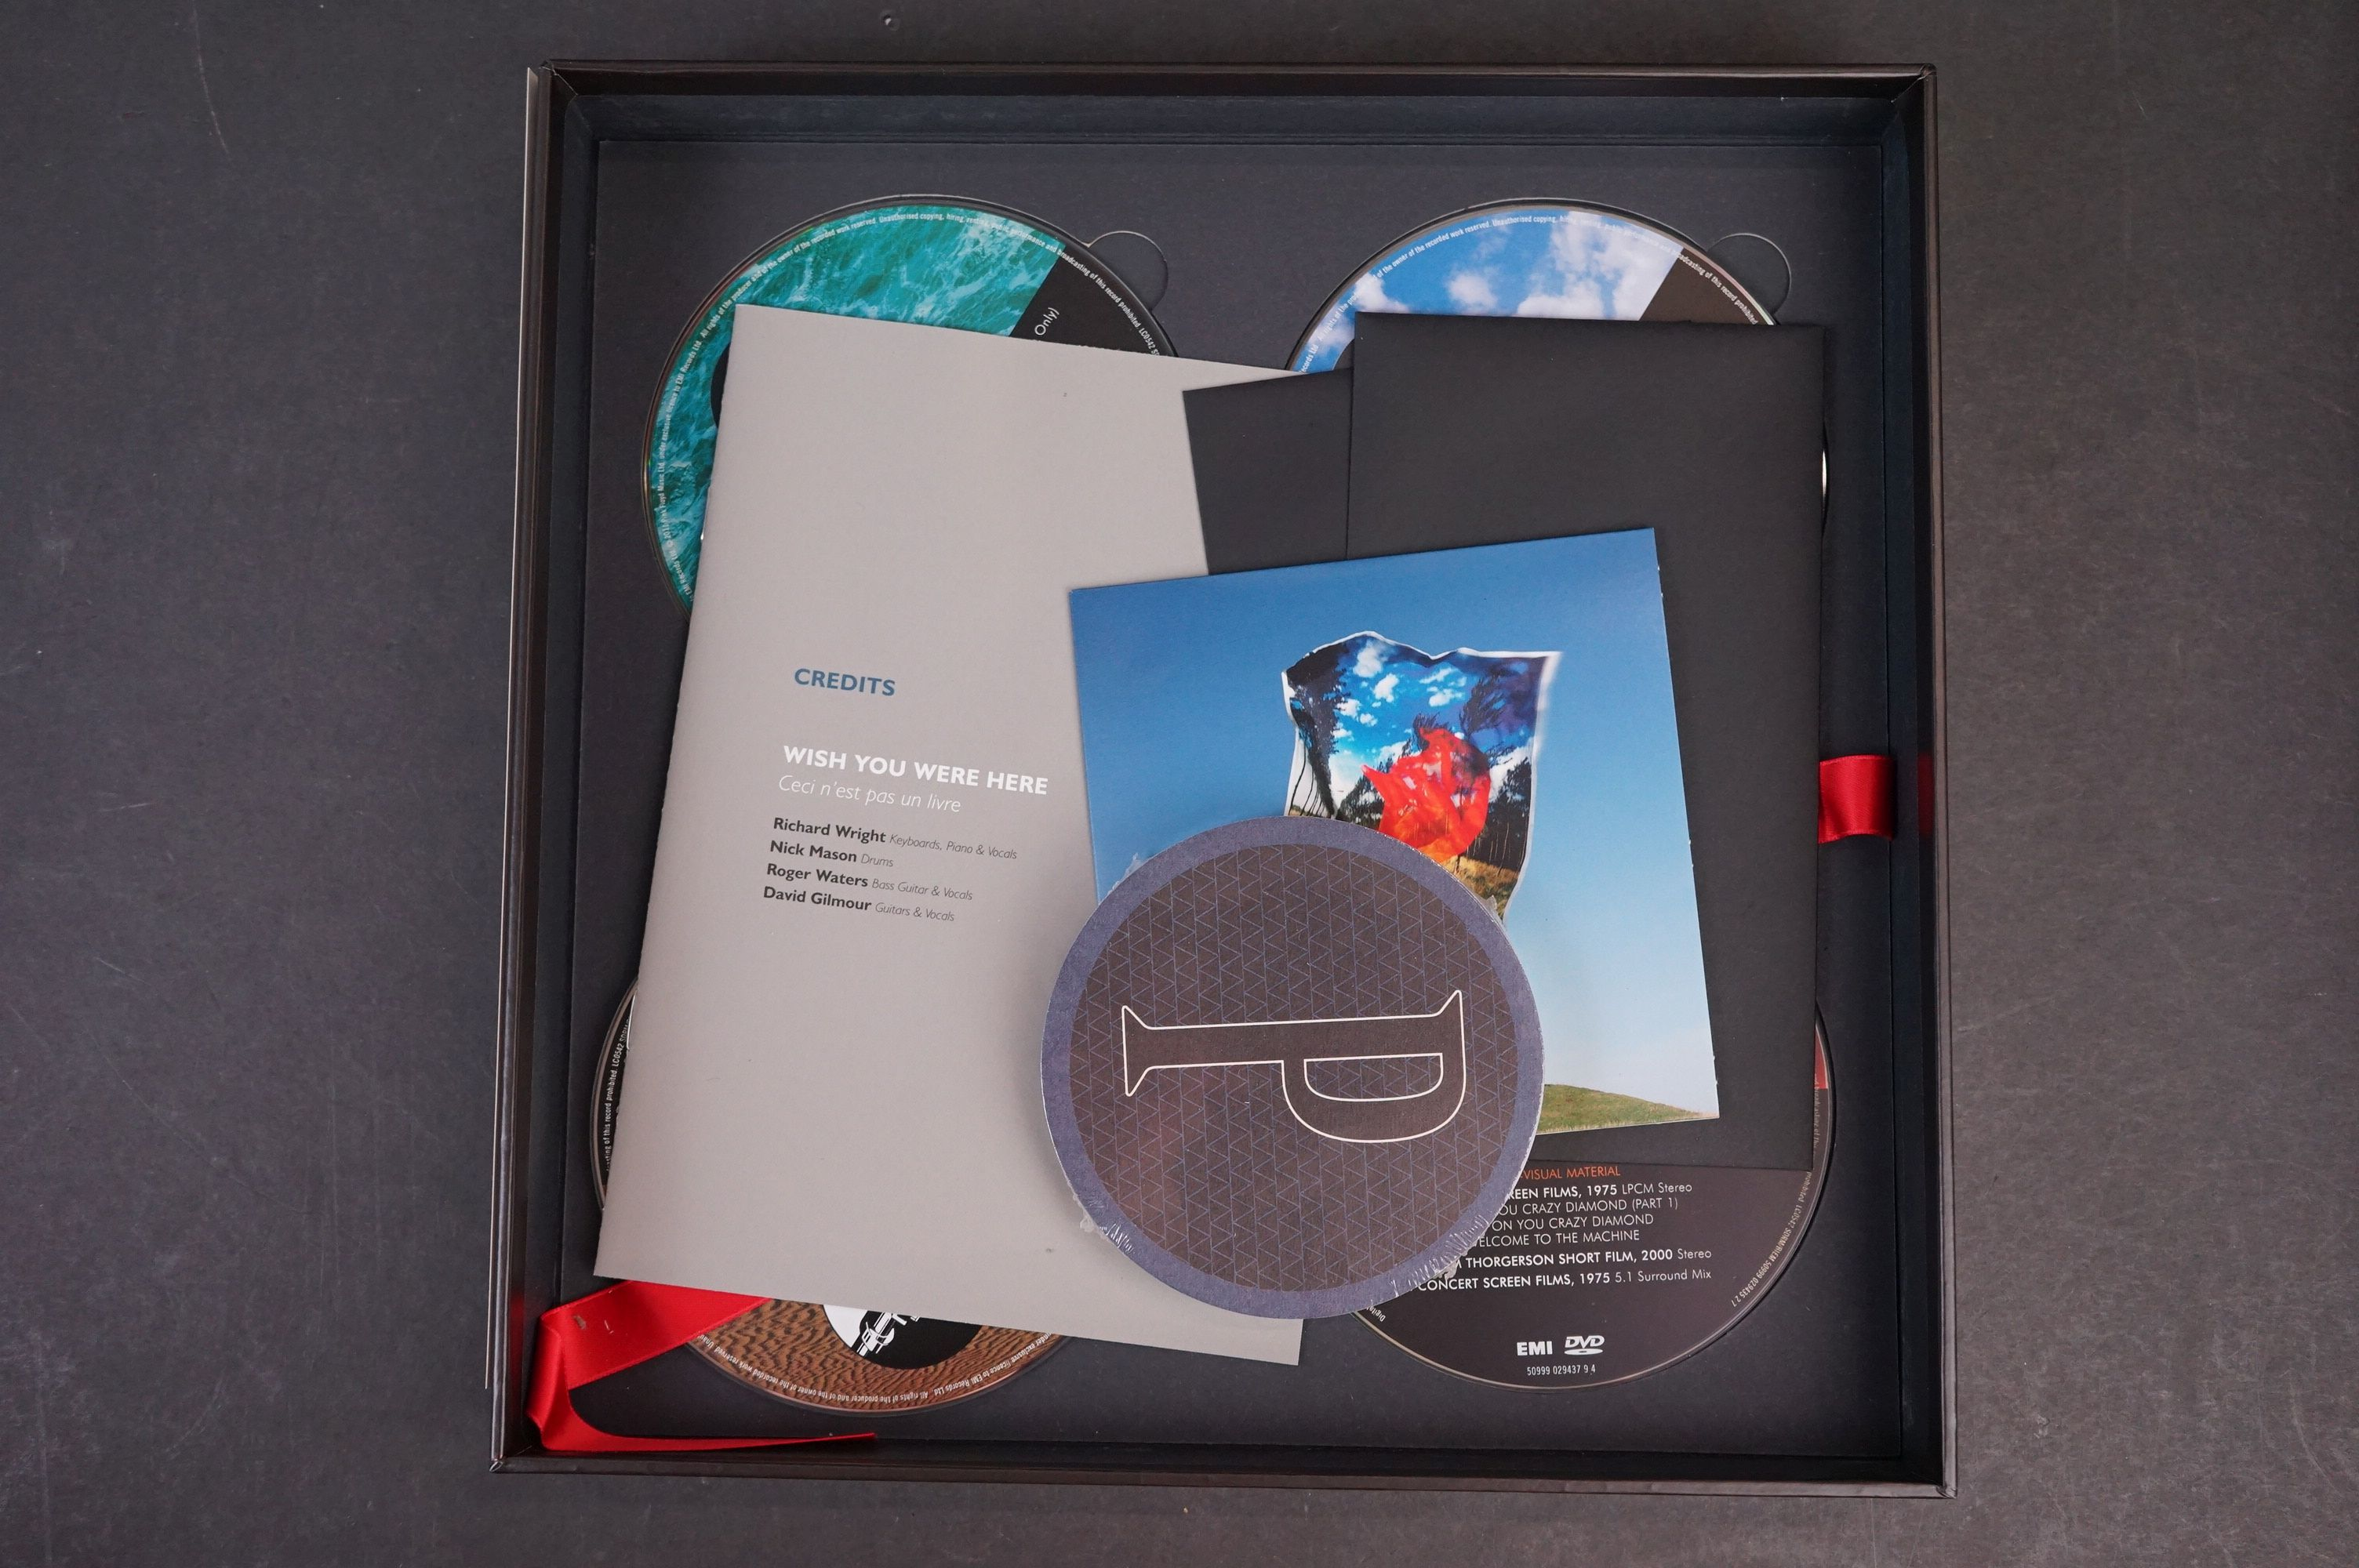 CD / DVD / Bluray - Pink Floyd Wish You Were Here 5 disc box set ex - Image 8 of 13